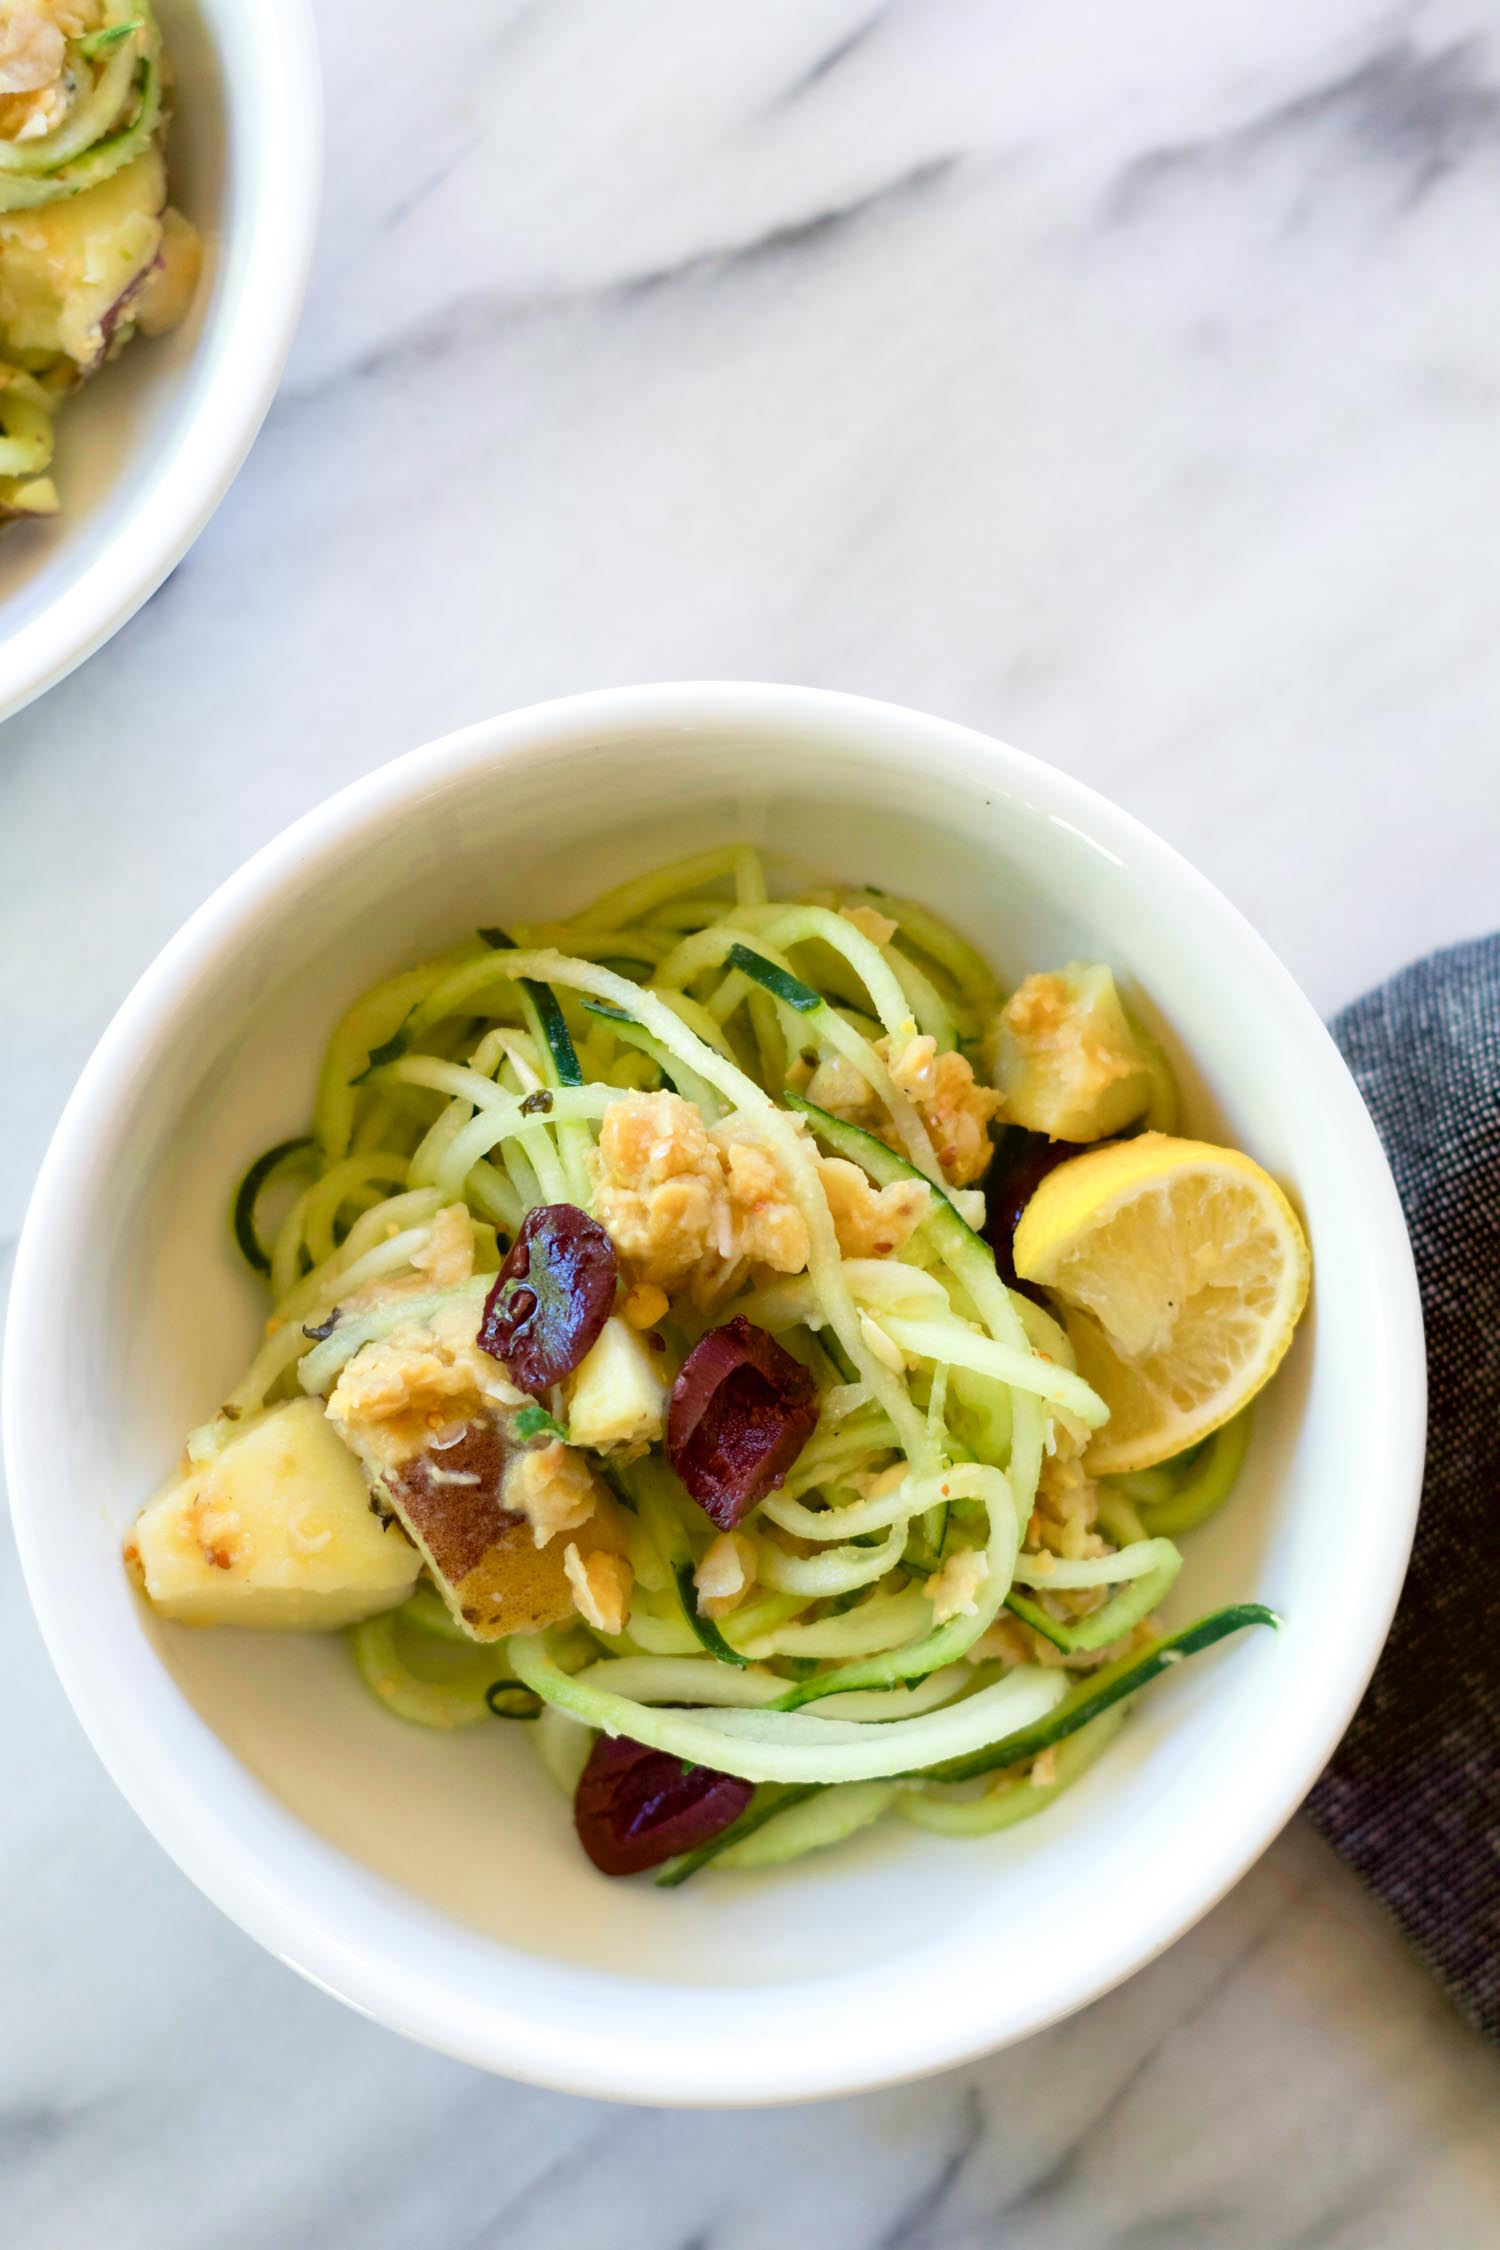 Nicoise-Inspired Salad with Spiralized Cucumber Noodles, by beautiful Ingredient